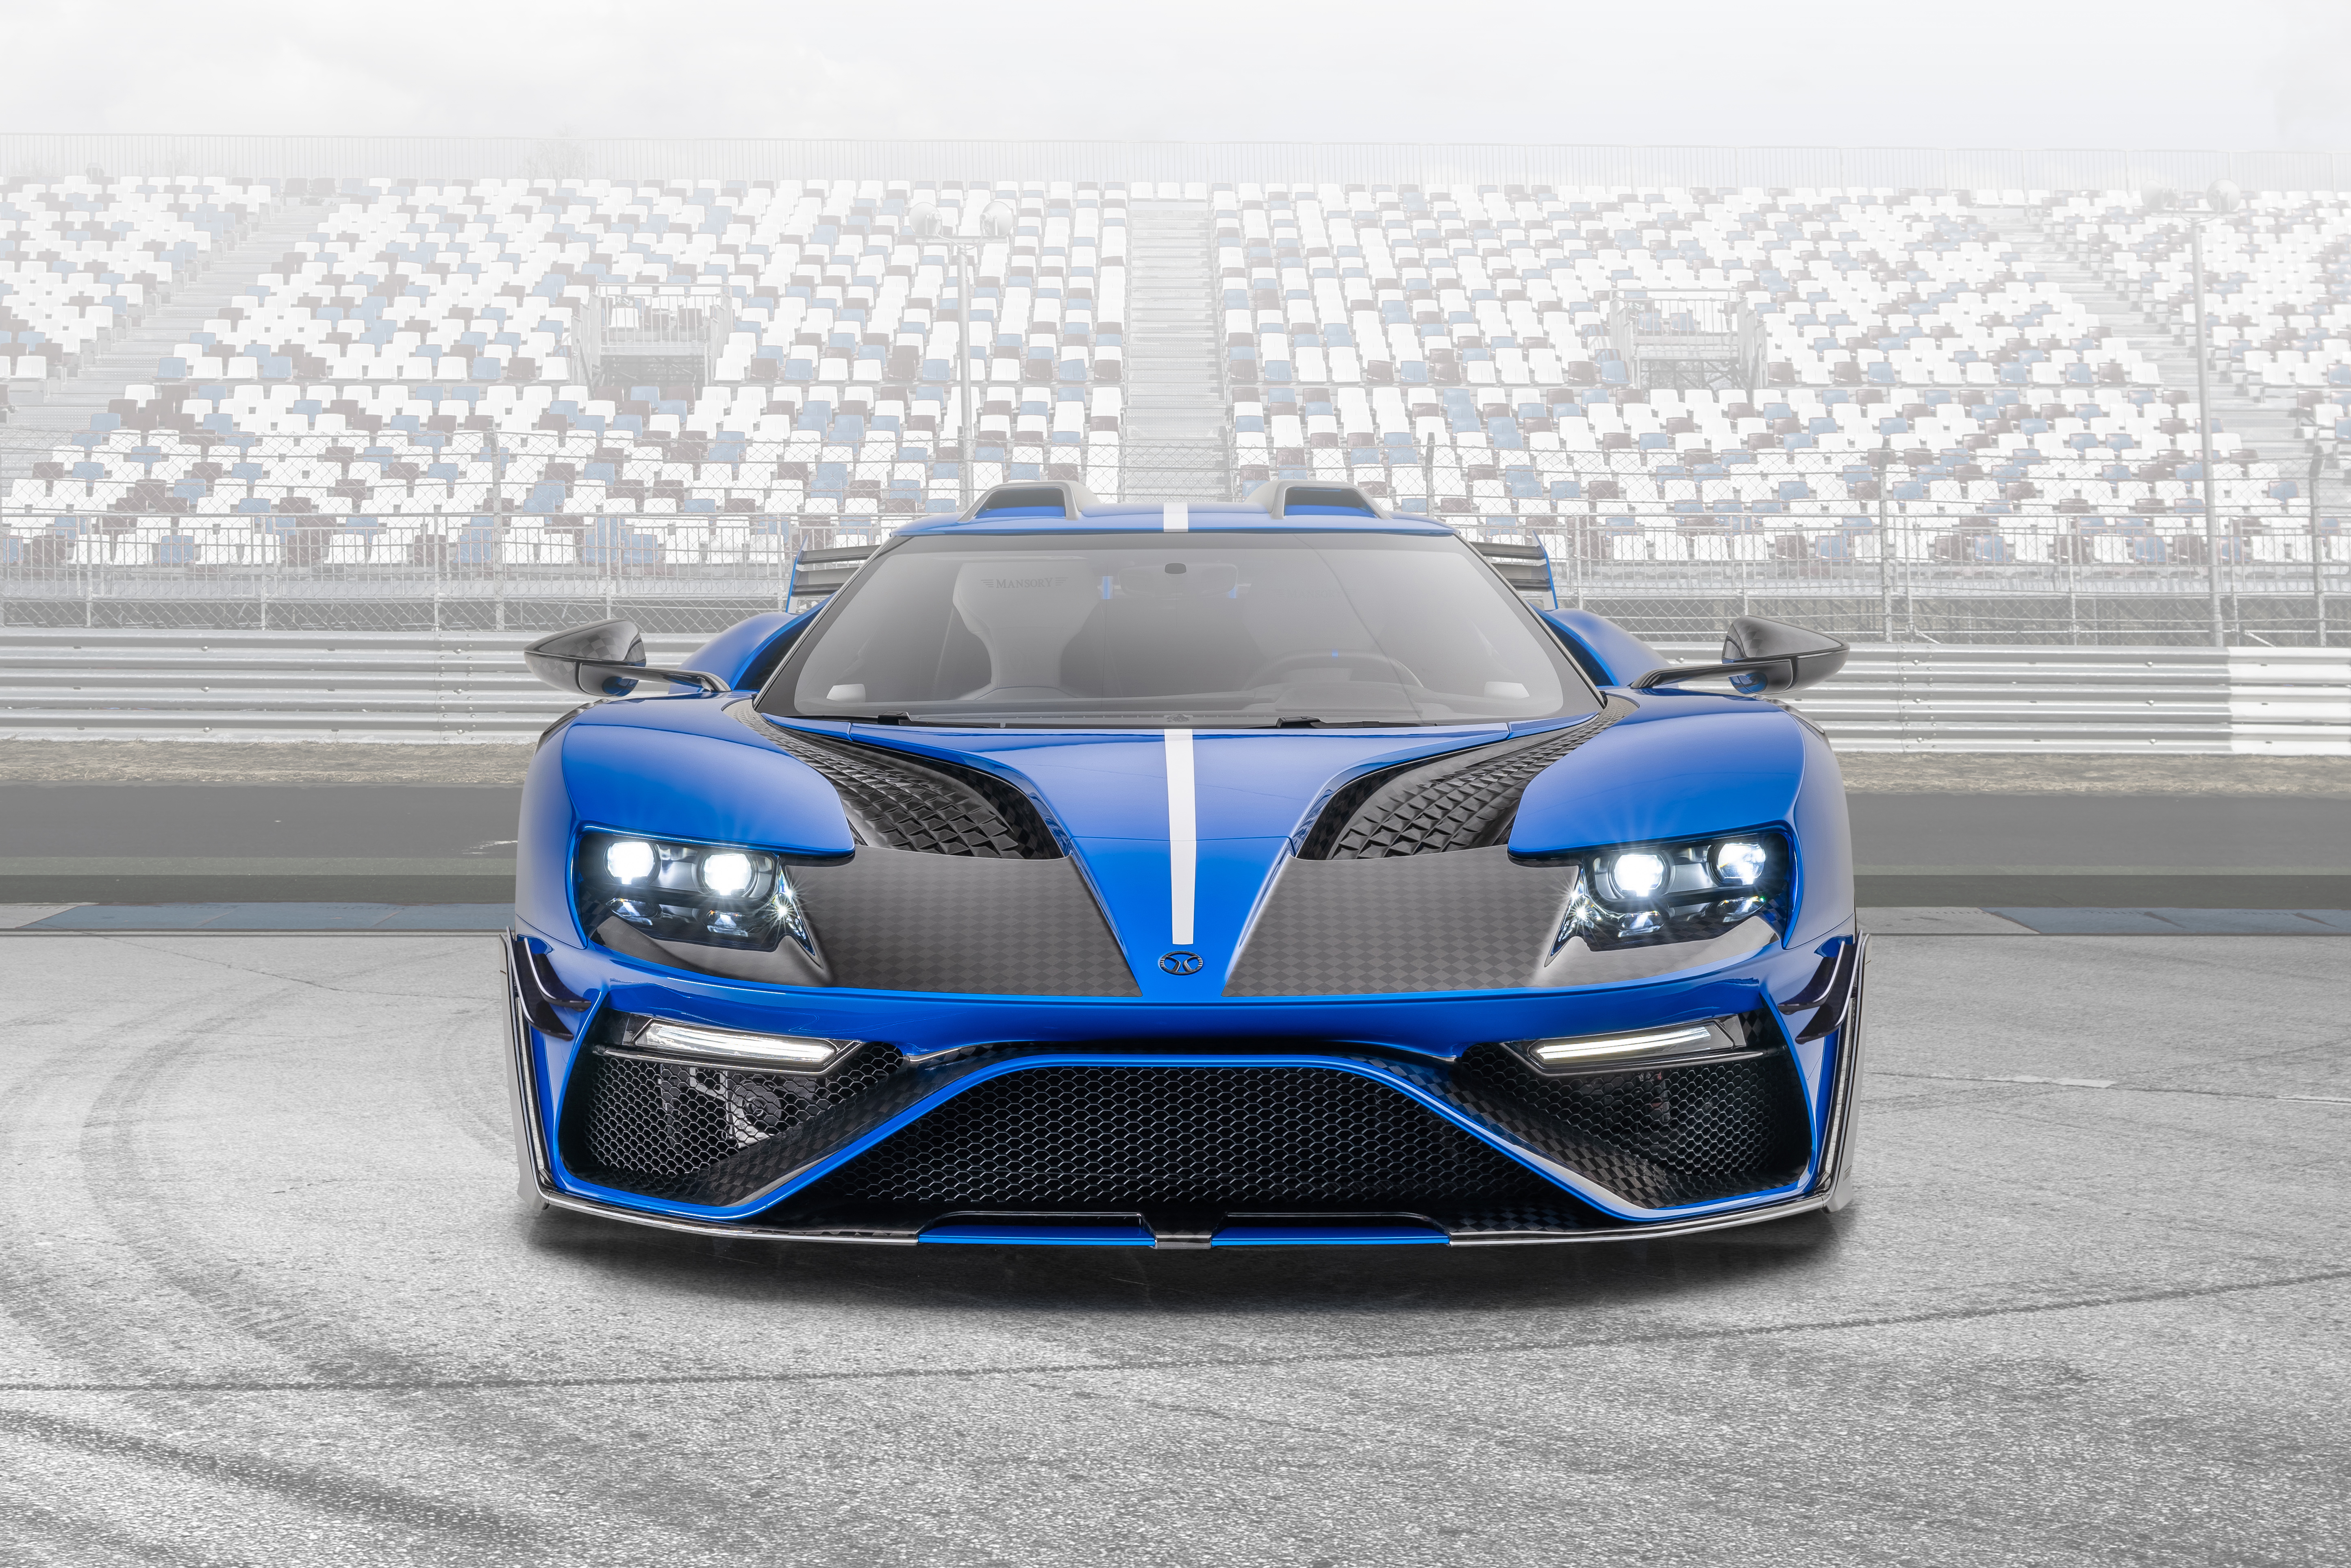 mansory le mansory 2020 4k 1608818814 - Mansory Le MANSORY 2020 4k - Mansory Le MANSORY 2020 4k wallpapers